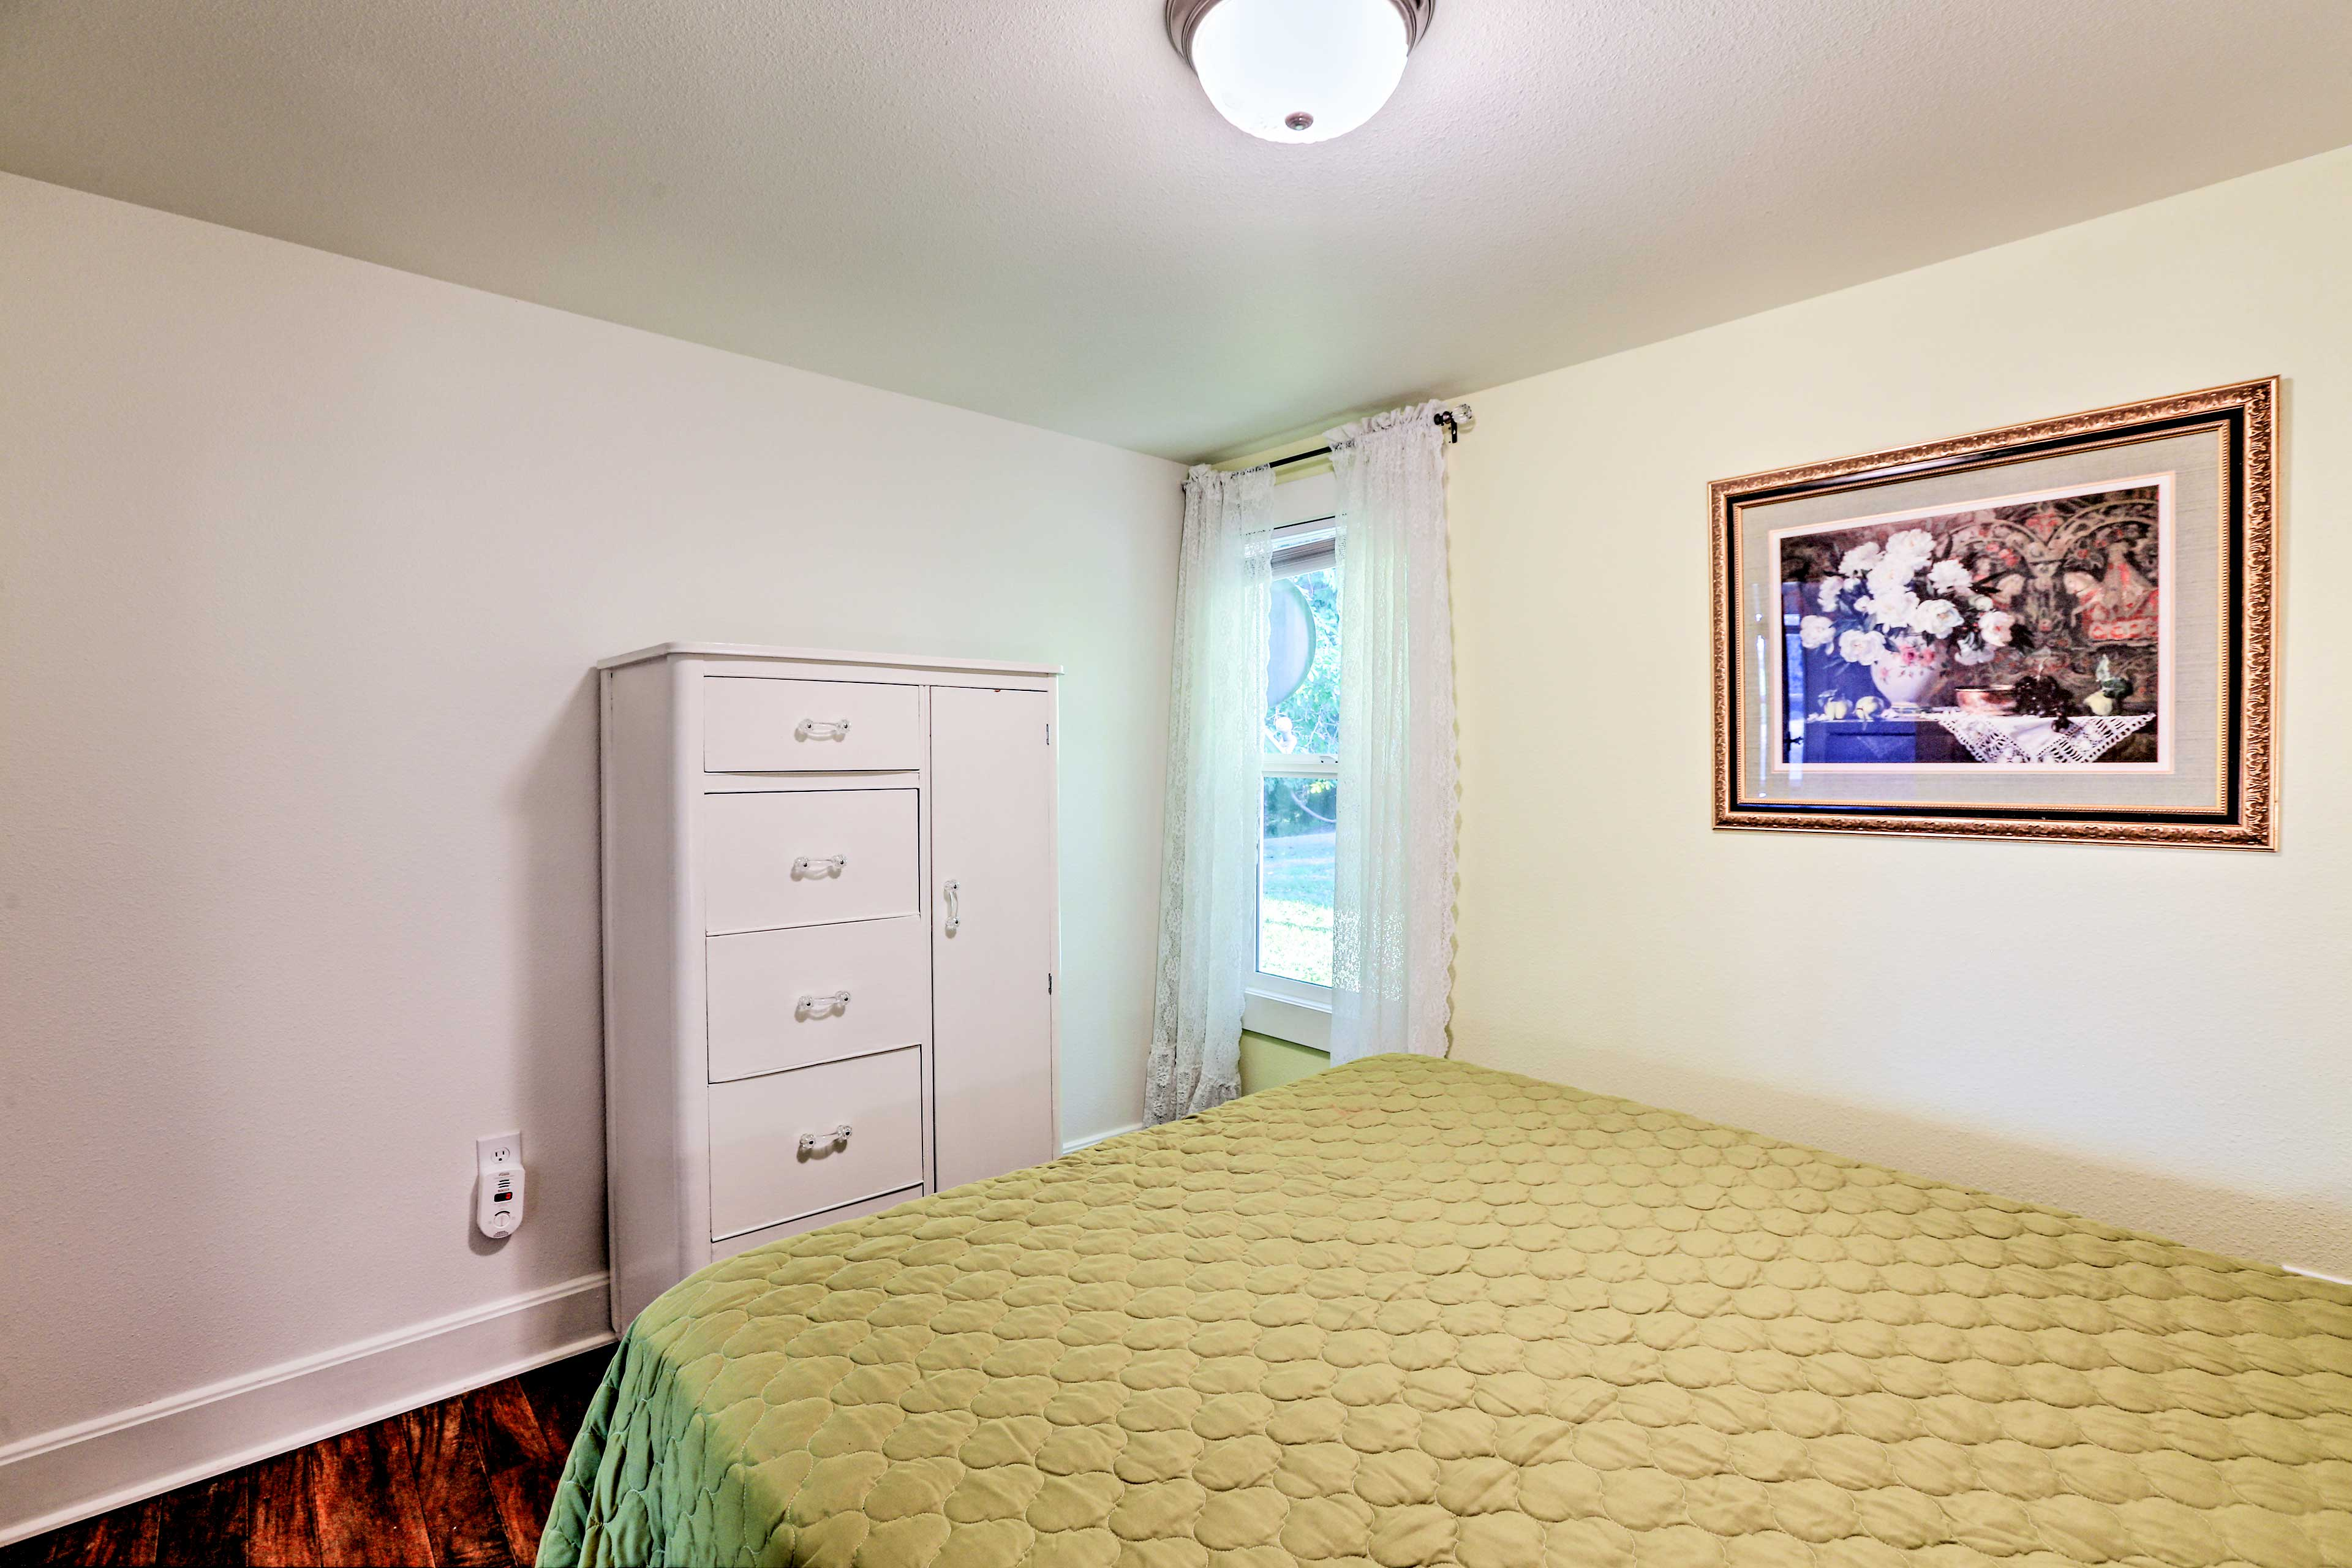 Two guests can share the queen bed in the green room.